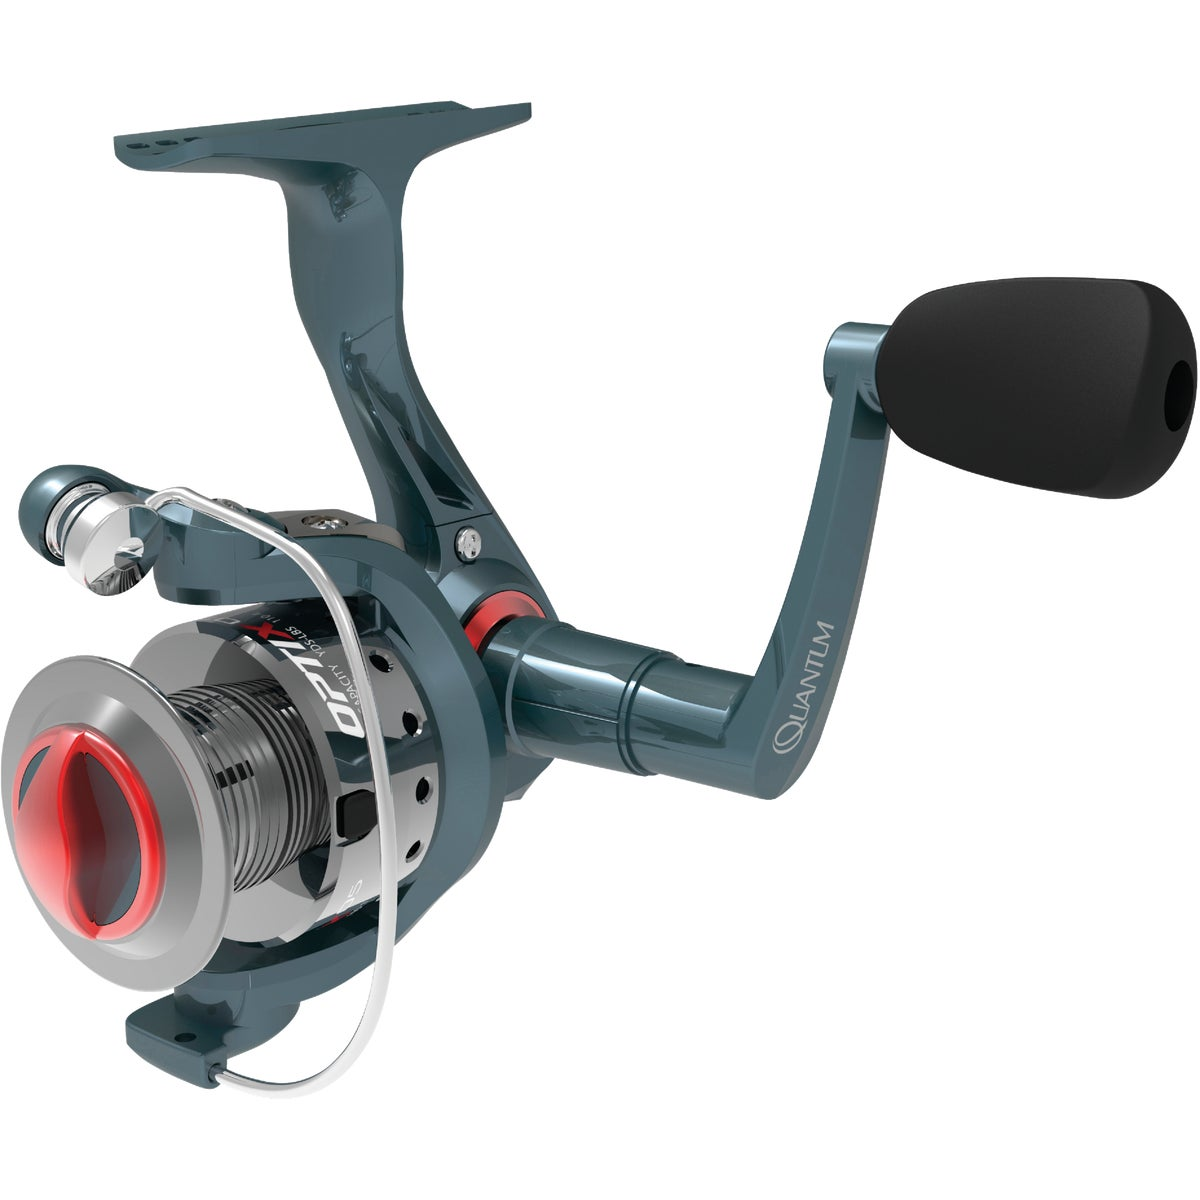 6LB OPTIX SPINNING REEL